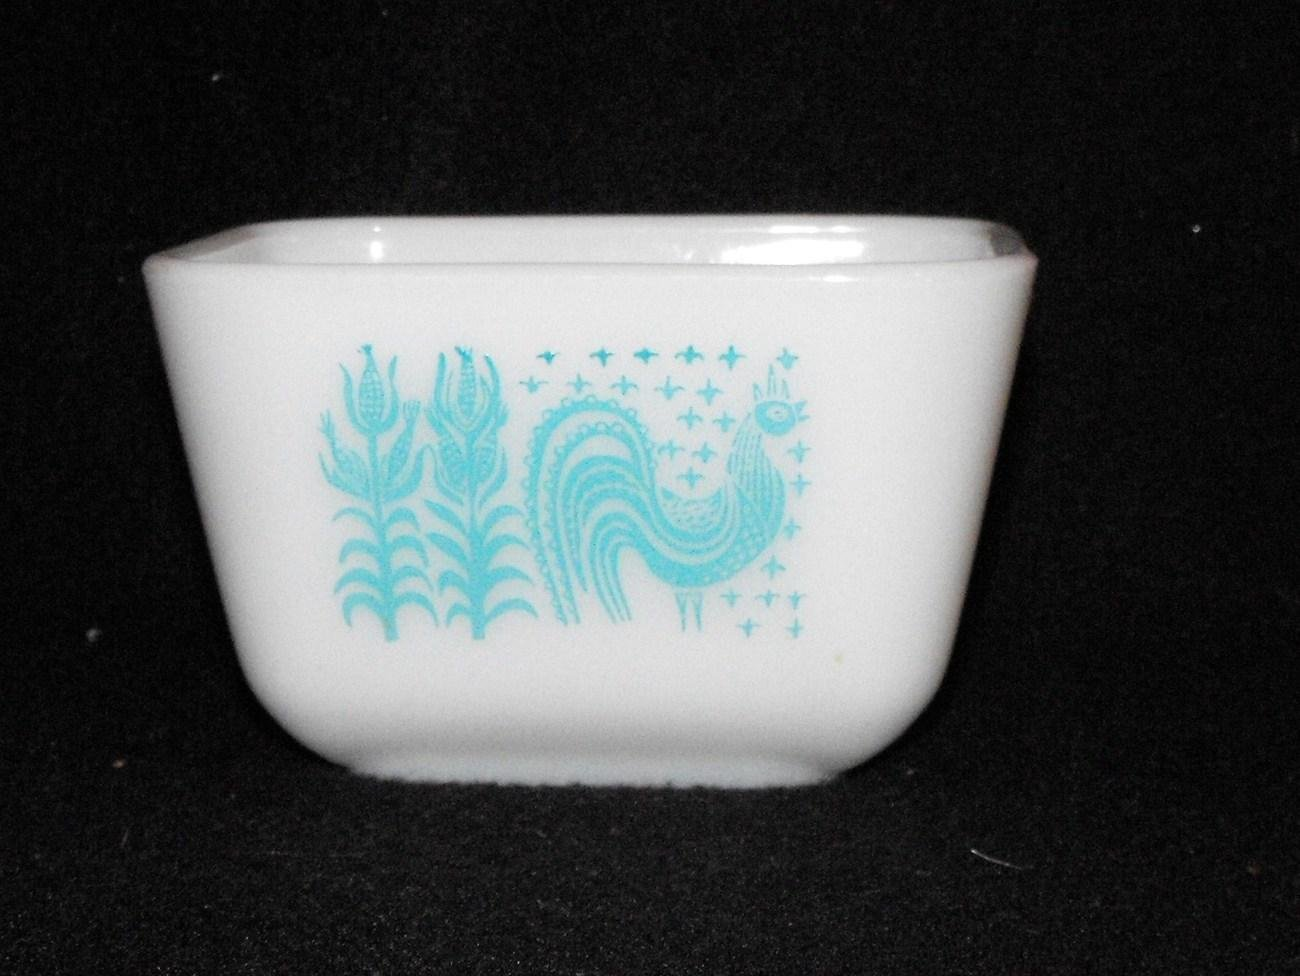 *SOLD~Awaiting Feedback~Vintage Pyrex Butterprint Amish Rooster Storage Dish